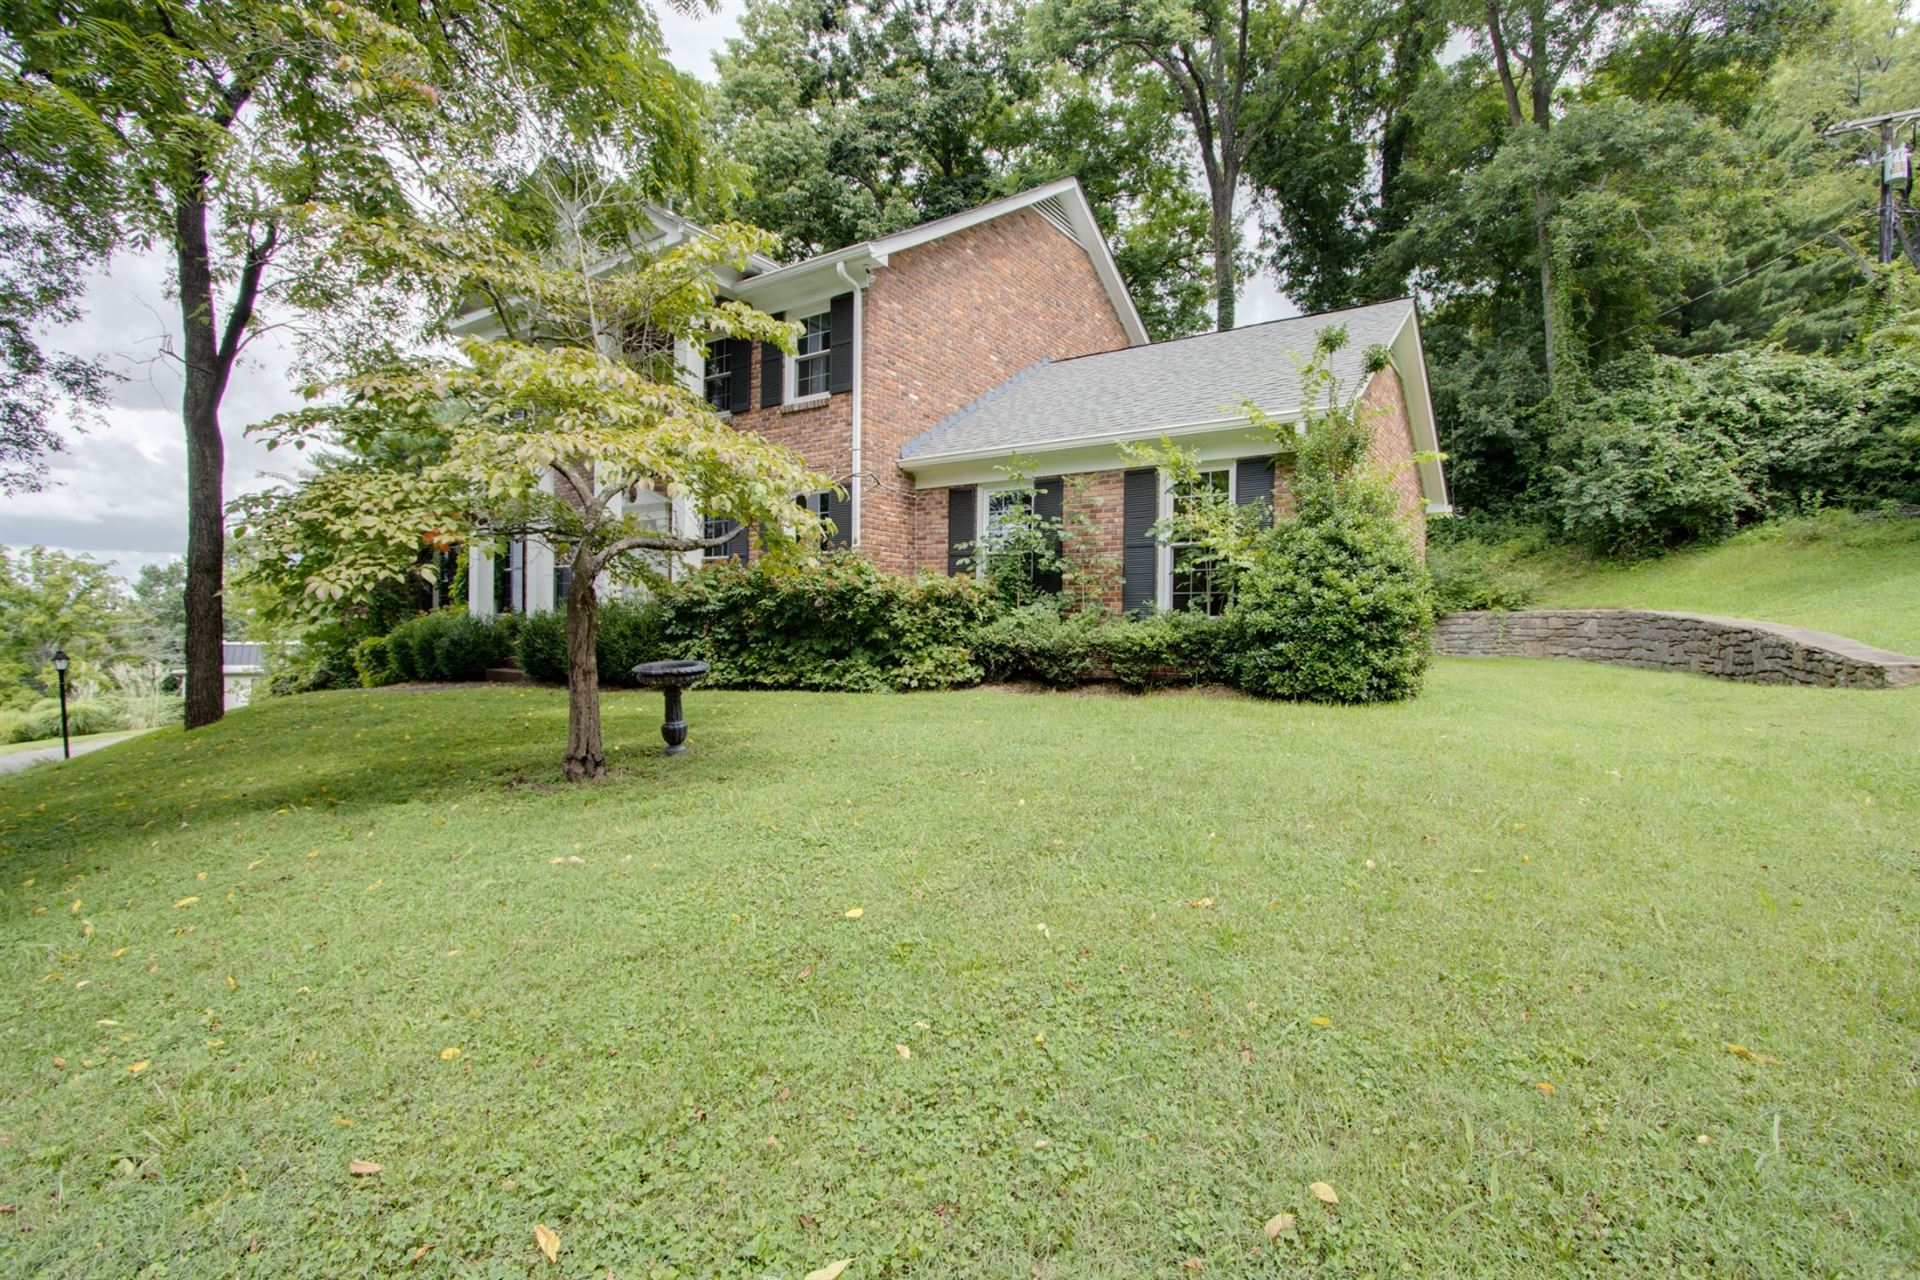 Photo of 5438 Camelot Rd, Brentwood, TN 37027 (MLS # 2290558)